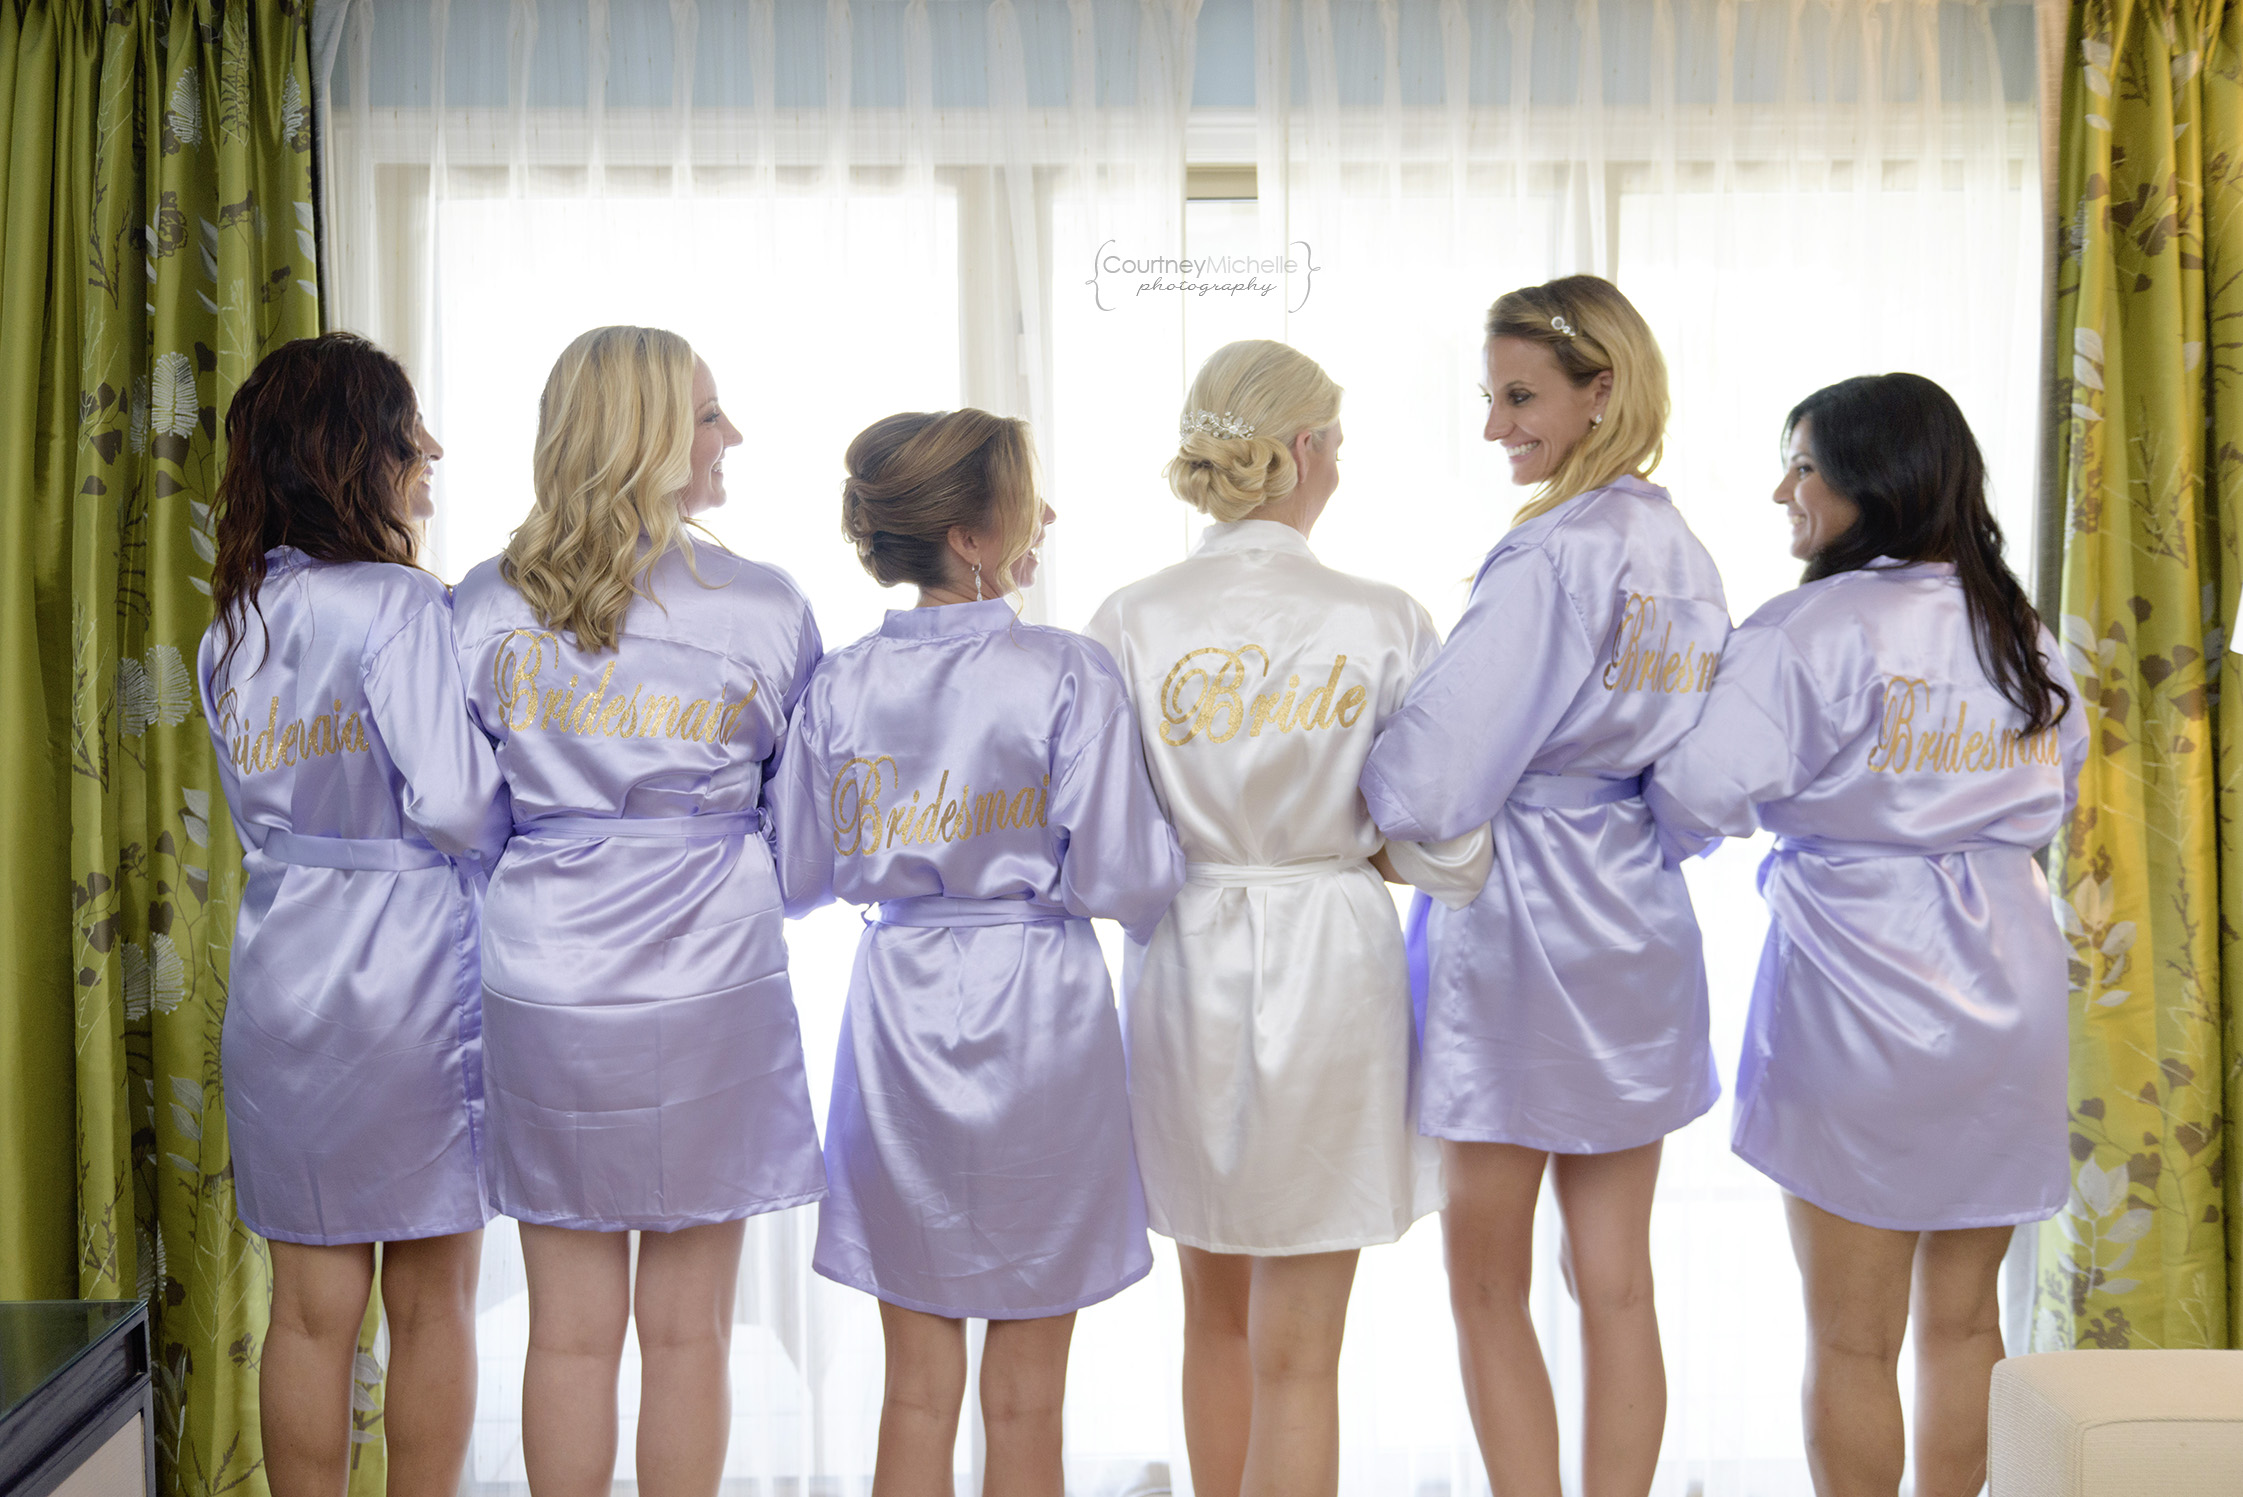 bridesmaids-in-robes-grand-cayman-beach-wedding-photography-by-courtney-laper©CopyrightCMP-LeaAnneRaj-7530.jpg